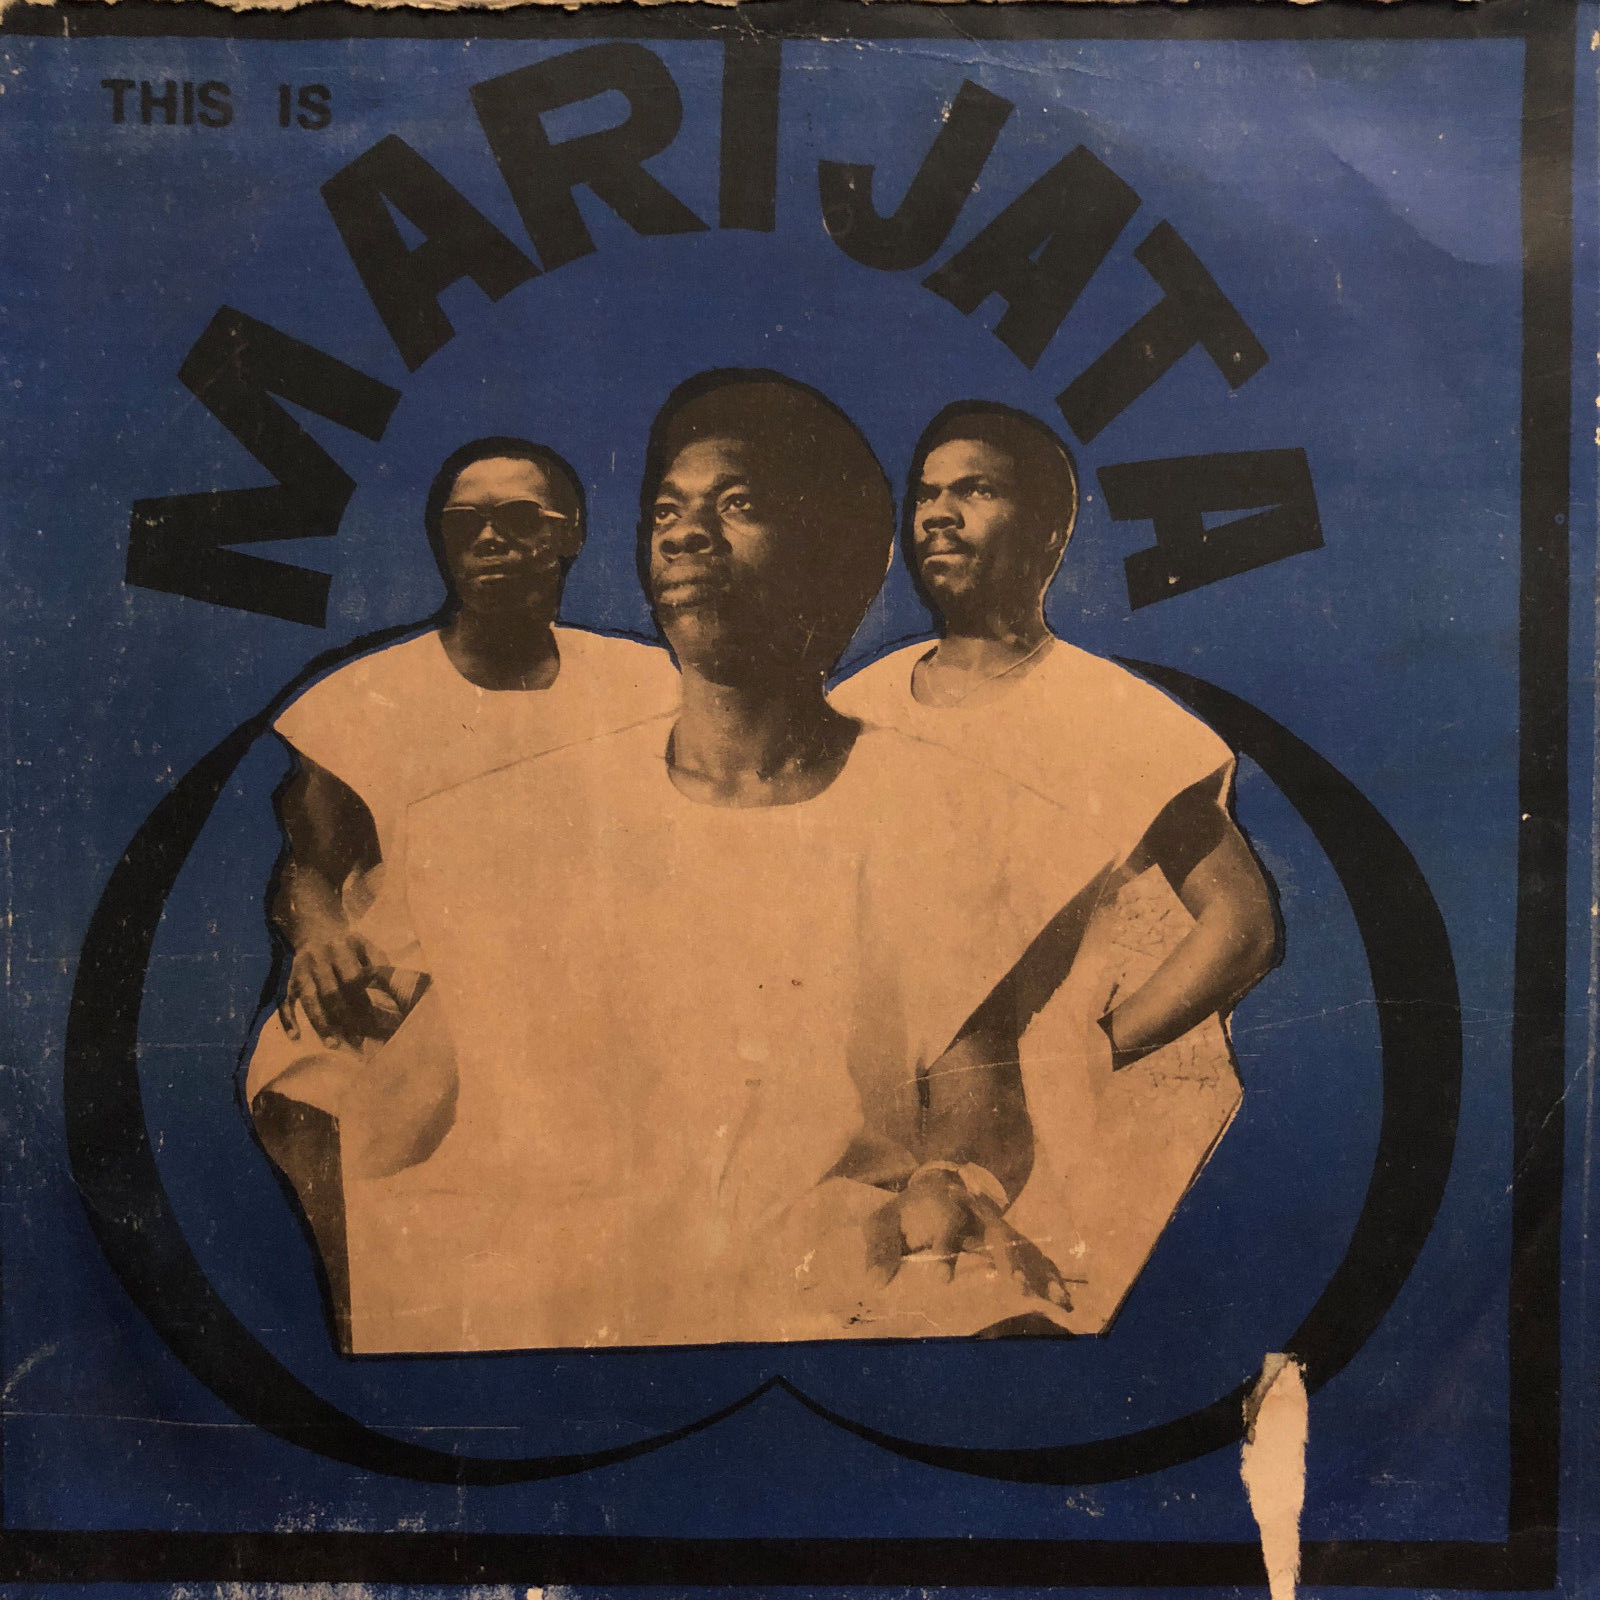 MARIJATA - THIS IS LP Afro Funk Gapophone Ghana ORIGINAL